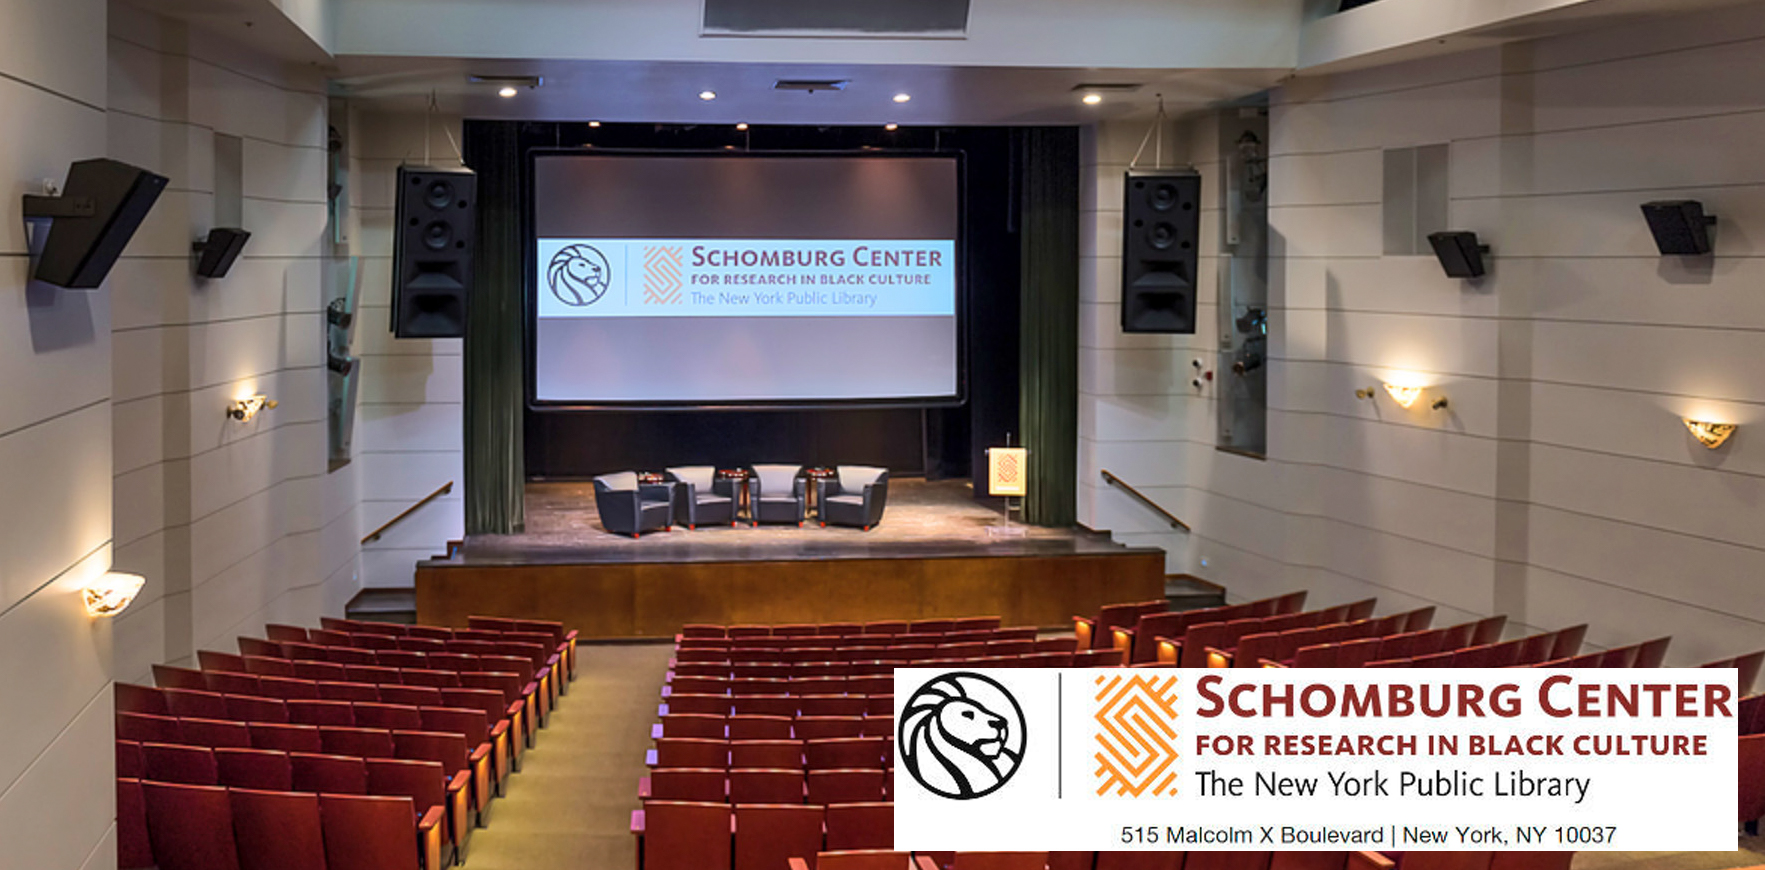 Sound system integration, tuning, UX, for the  Schomburg Center  Theater, Harlem, NYC.